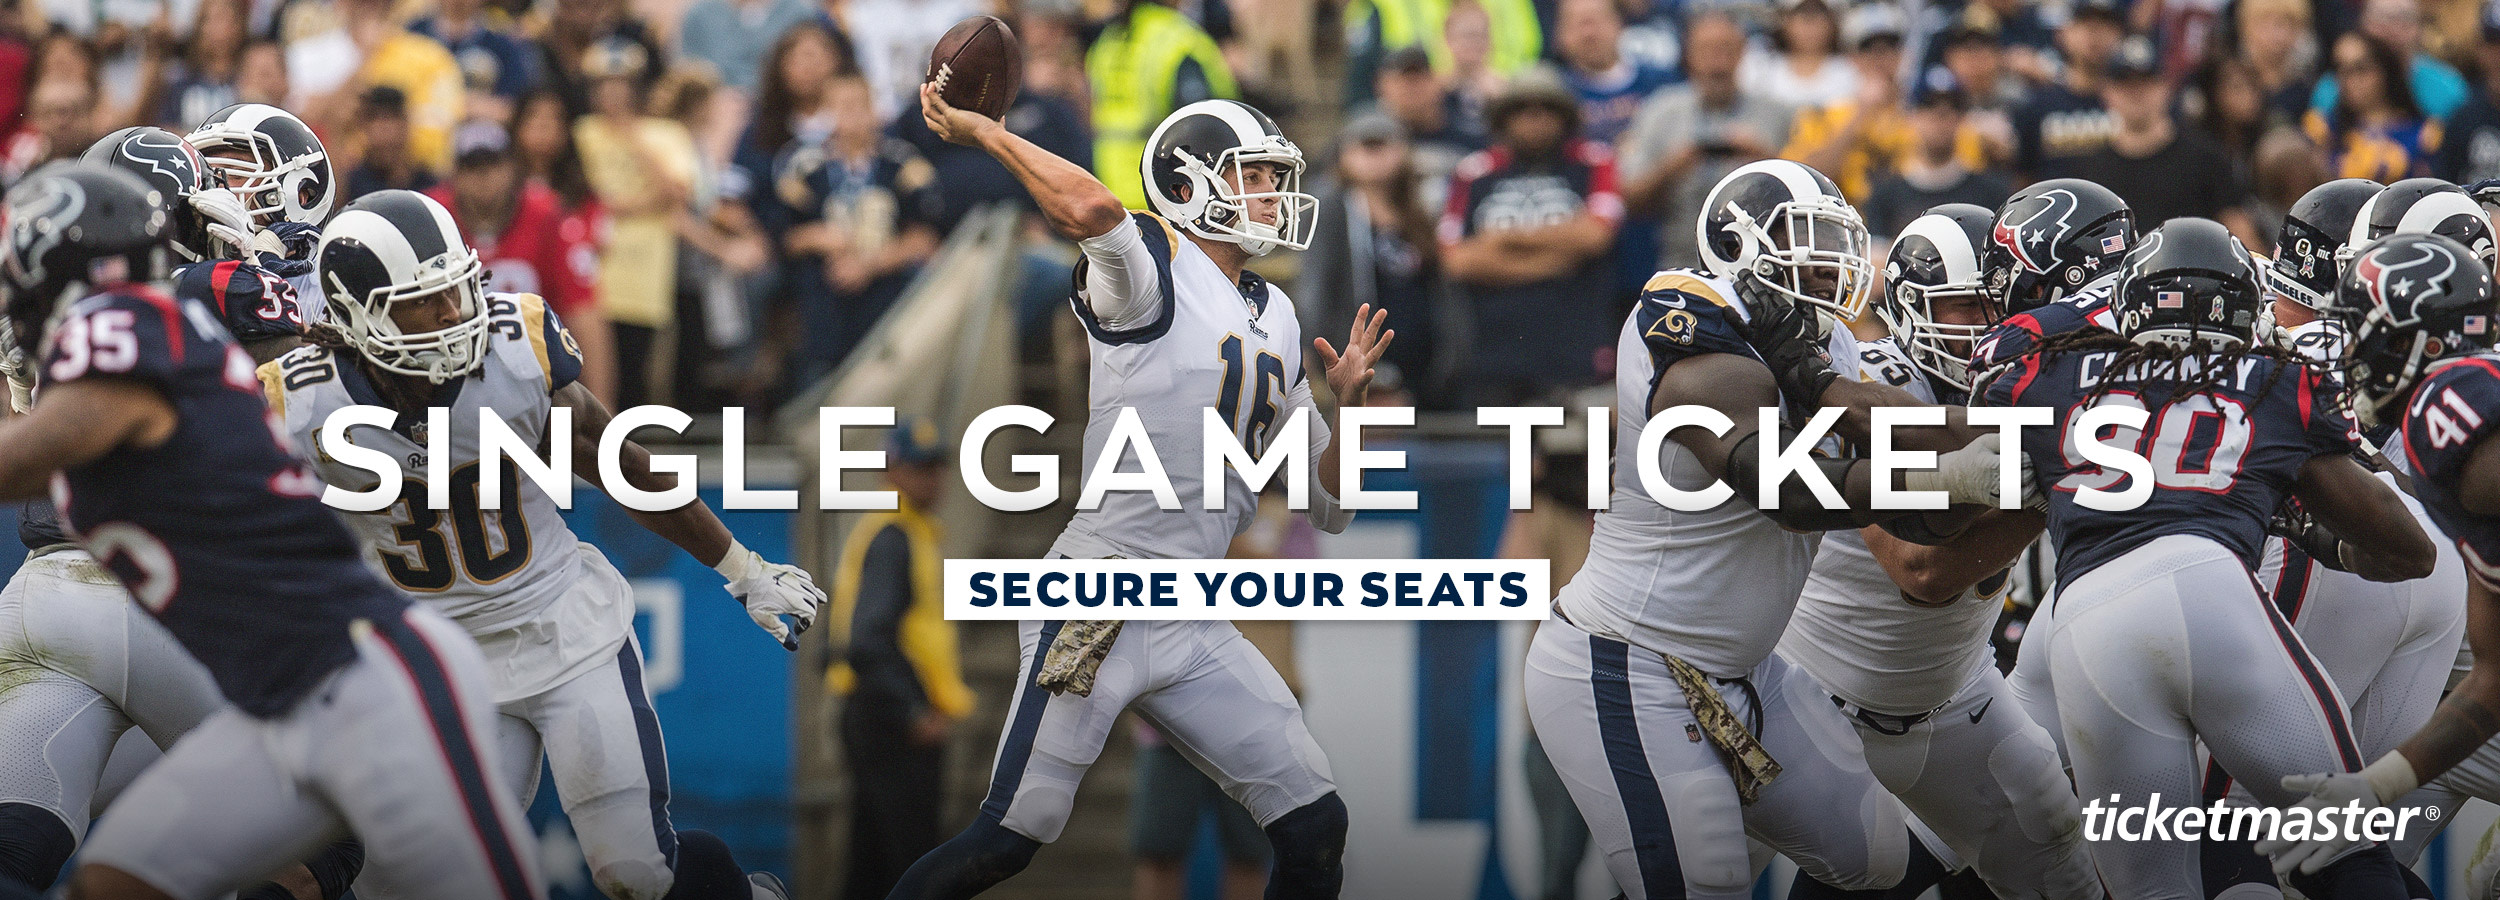 4f2d8a71 Rams Single Game Tickets   Los Angeles Rams - therams.com